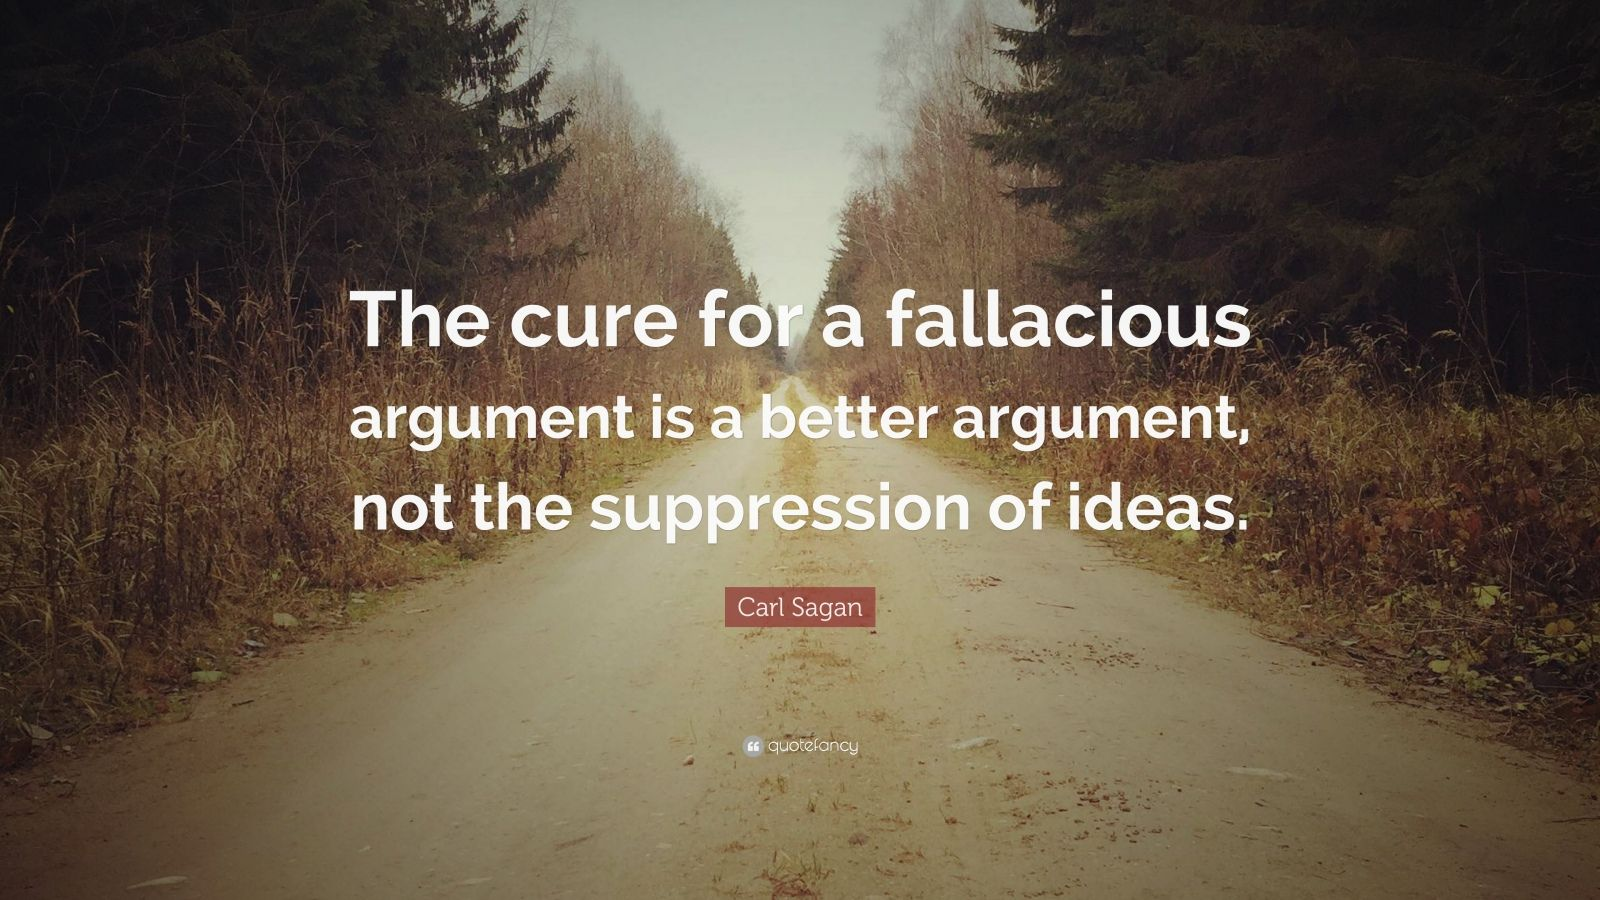 """Carl Sagan Quote: """"The cure for a fallacious argument is a better argument, not the suppression of ideas."""""""